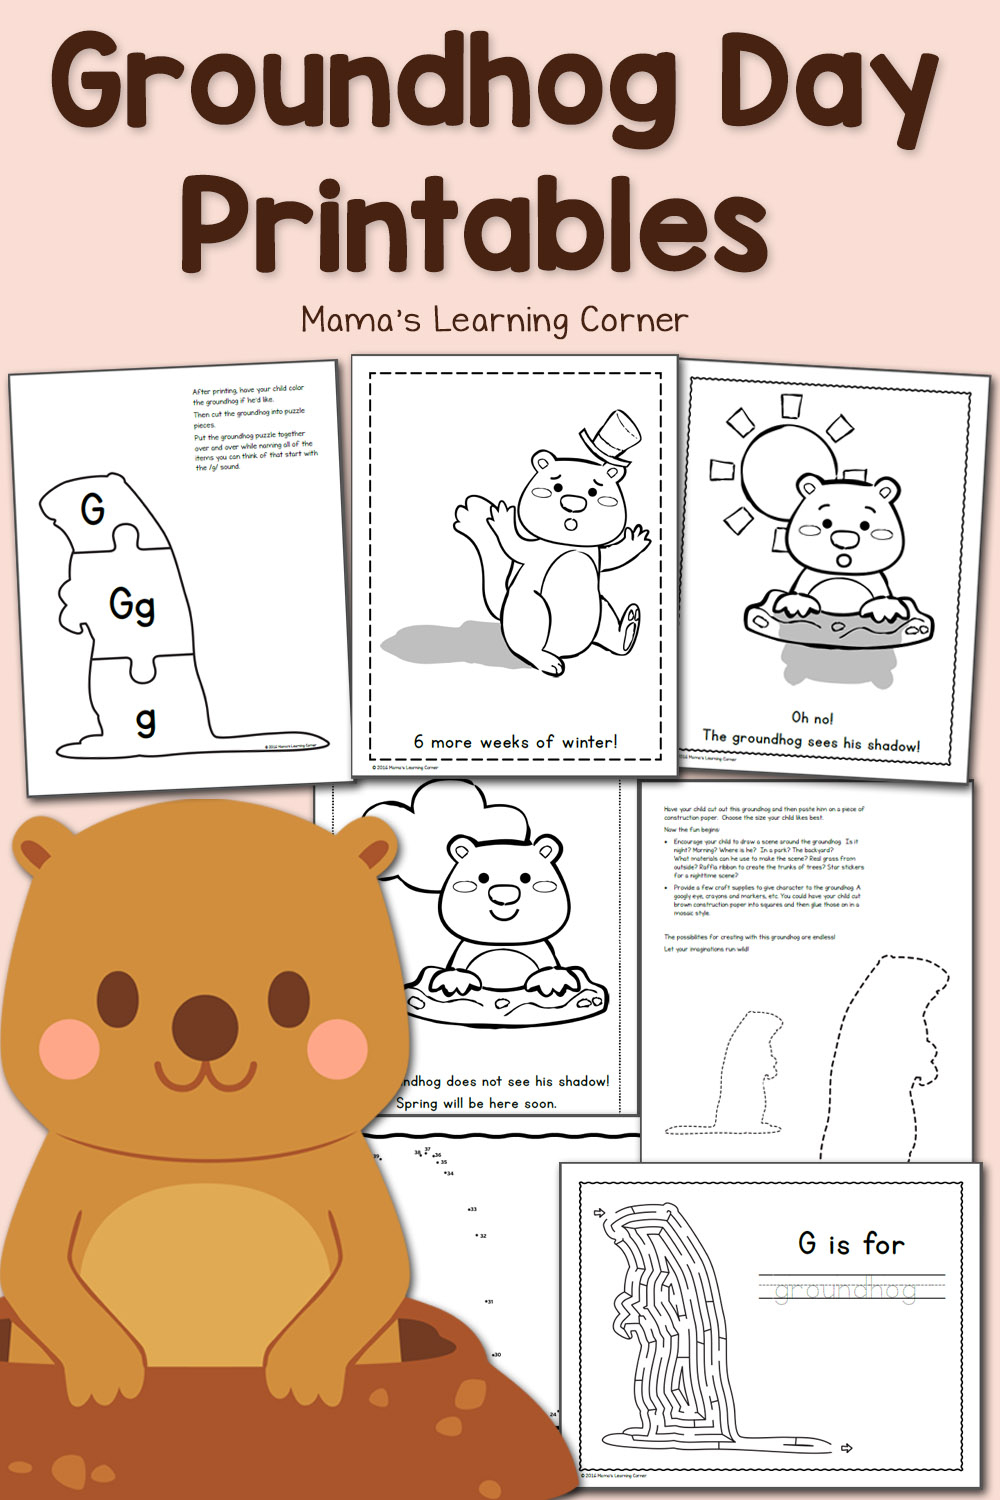 Free Groundhog Day Printables! - Mamas Learning Corner - Free Printable Groundhog Day Booklet